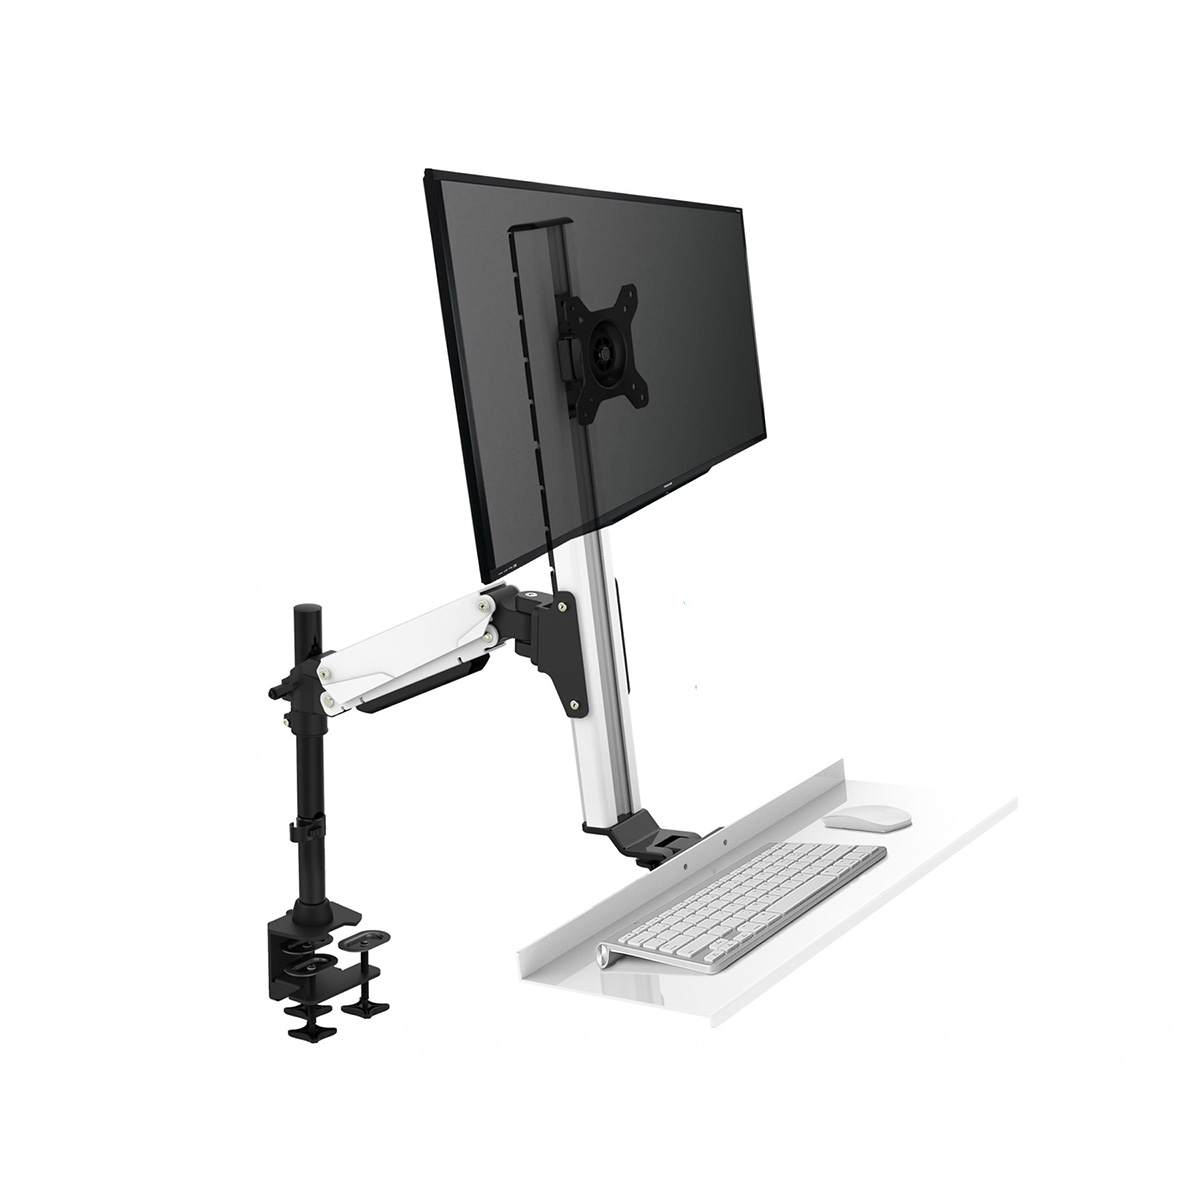 FD-1 Universal Desk Mount